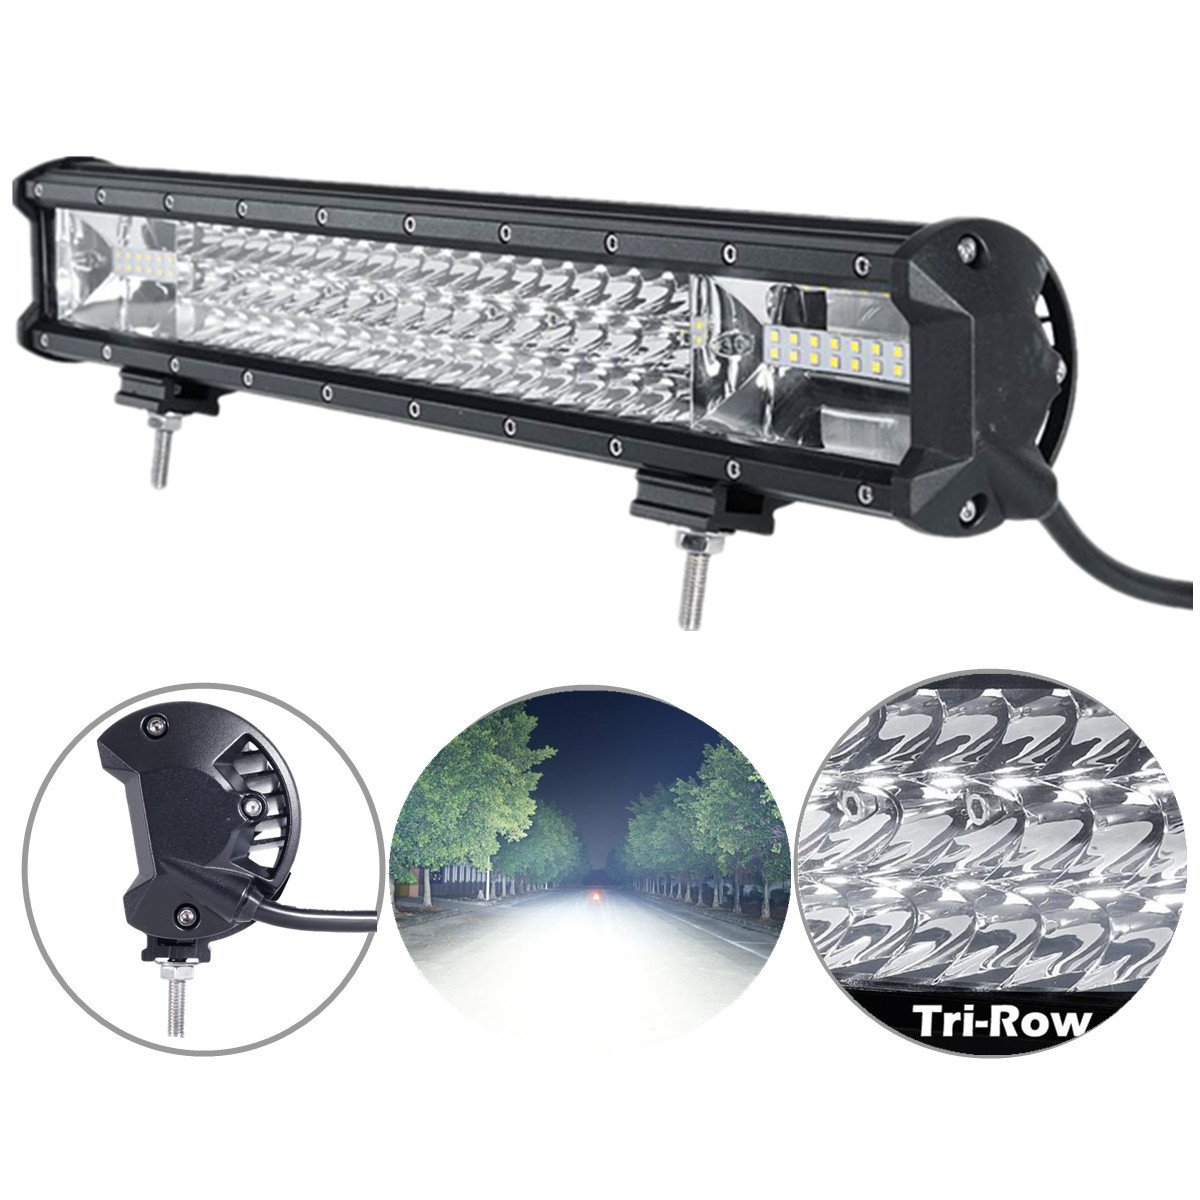 TRIPLE-ROW LED Light Bar